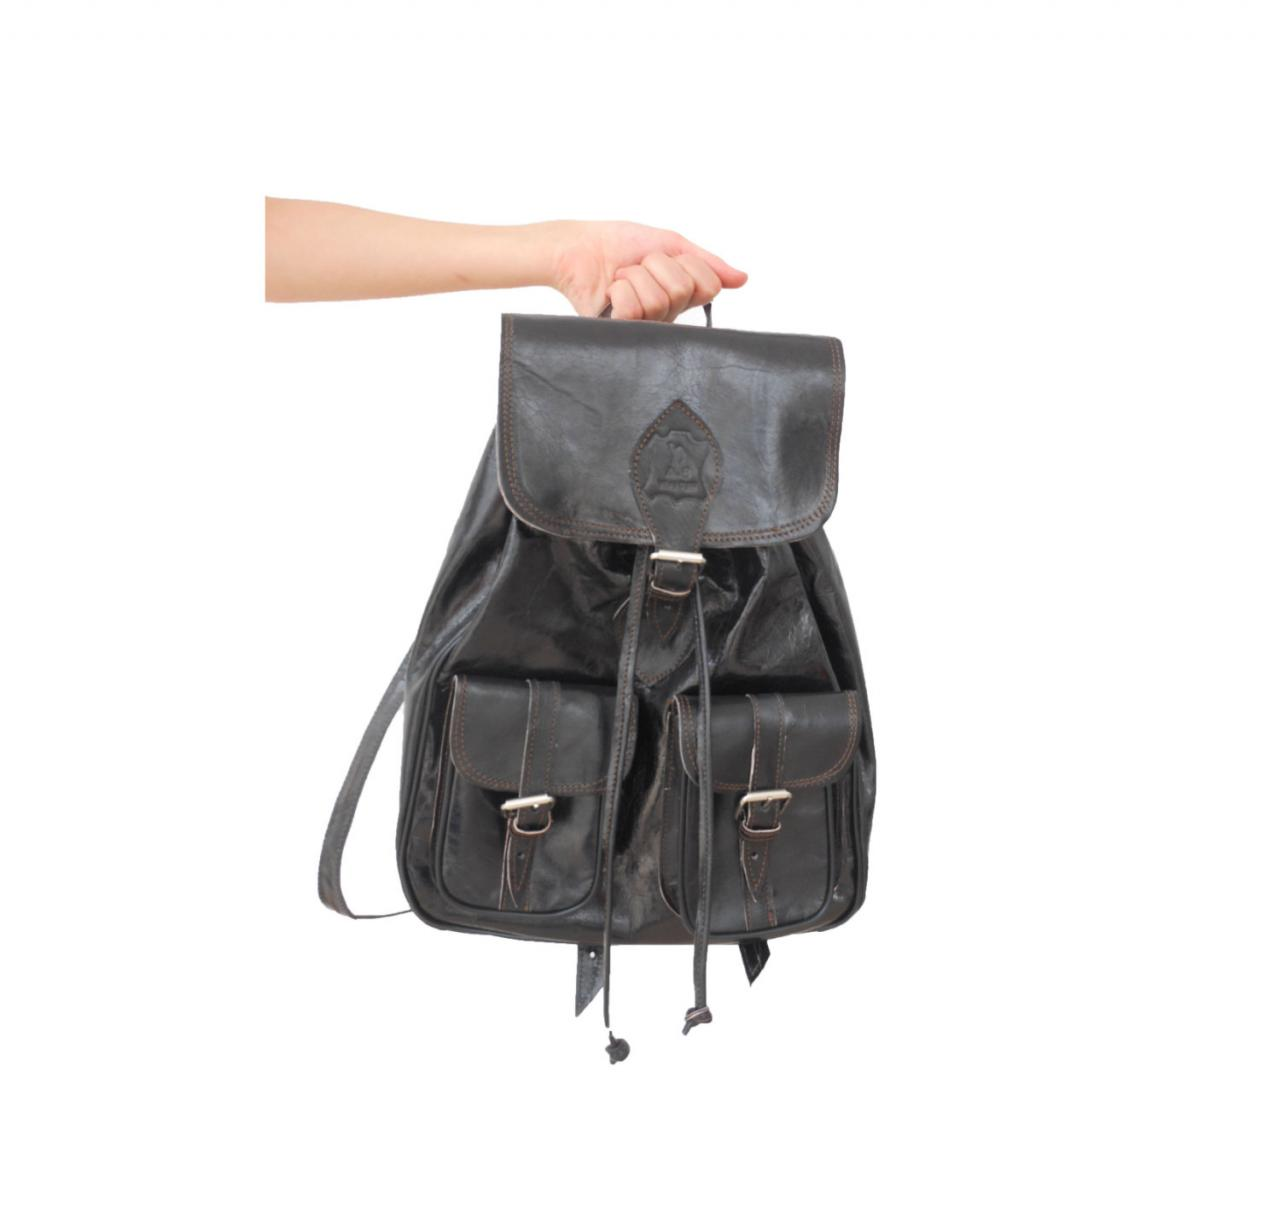 Picnic Backpack Australia Black Leather Backpack Satchel Bag Handmade Soft Leather